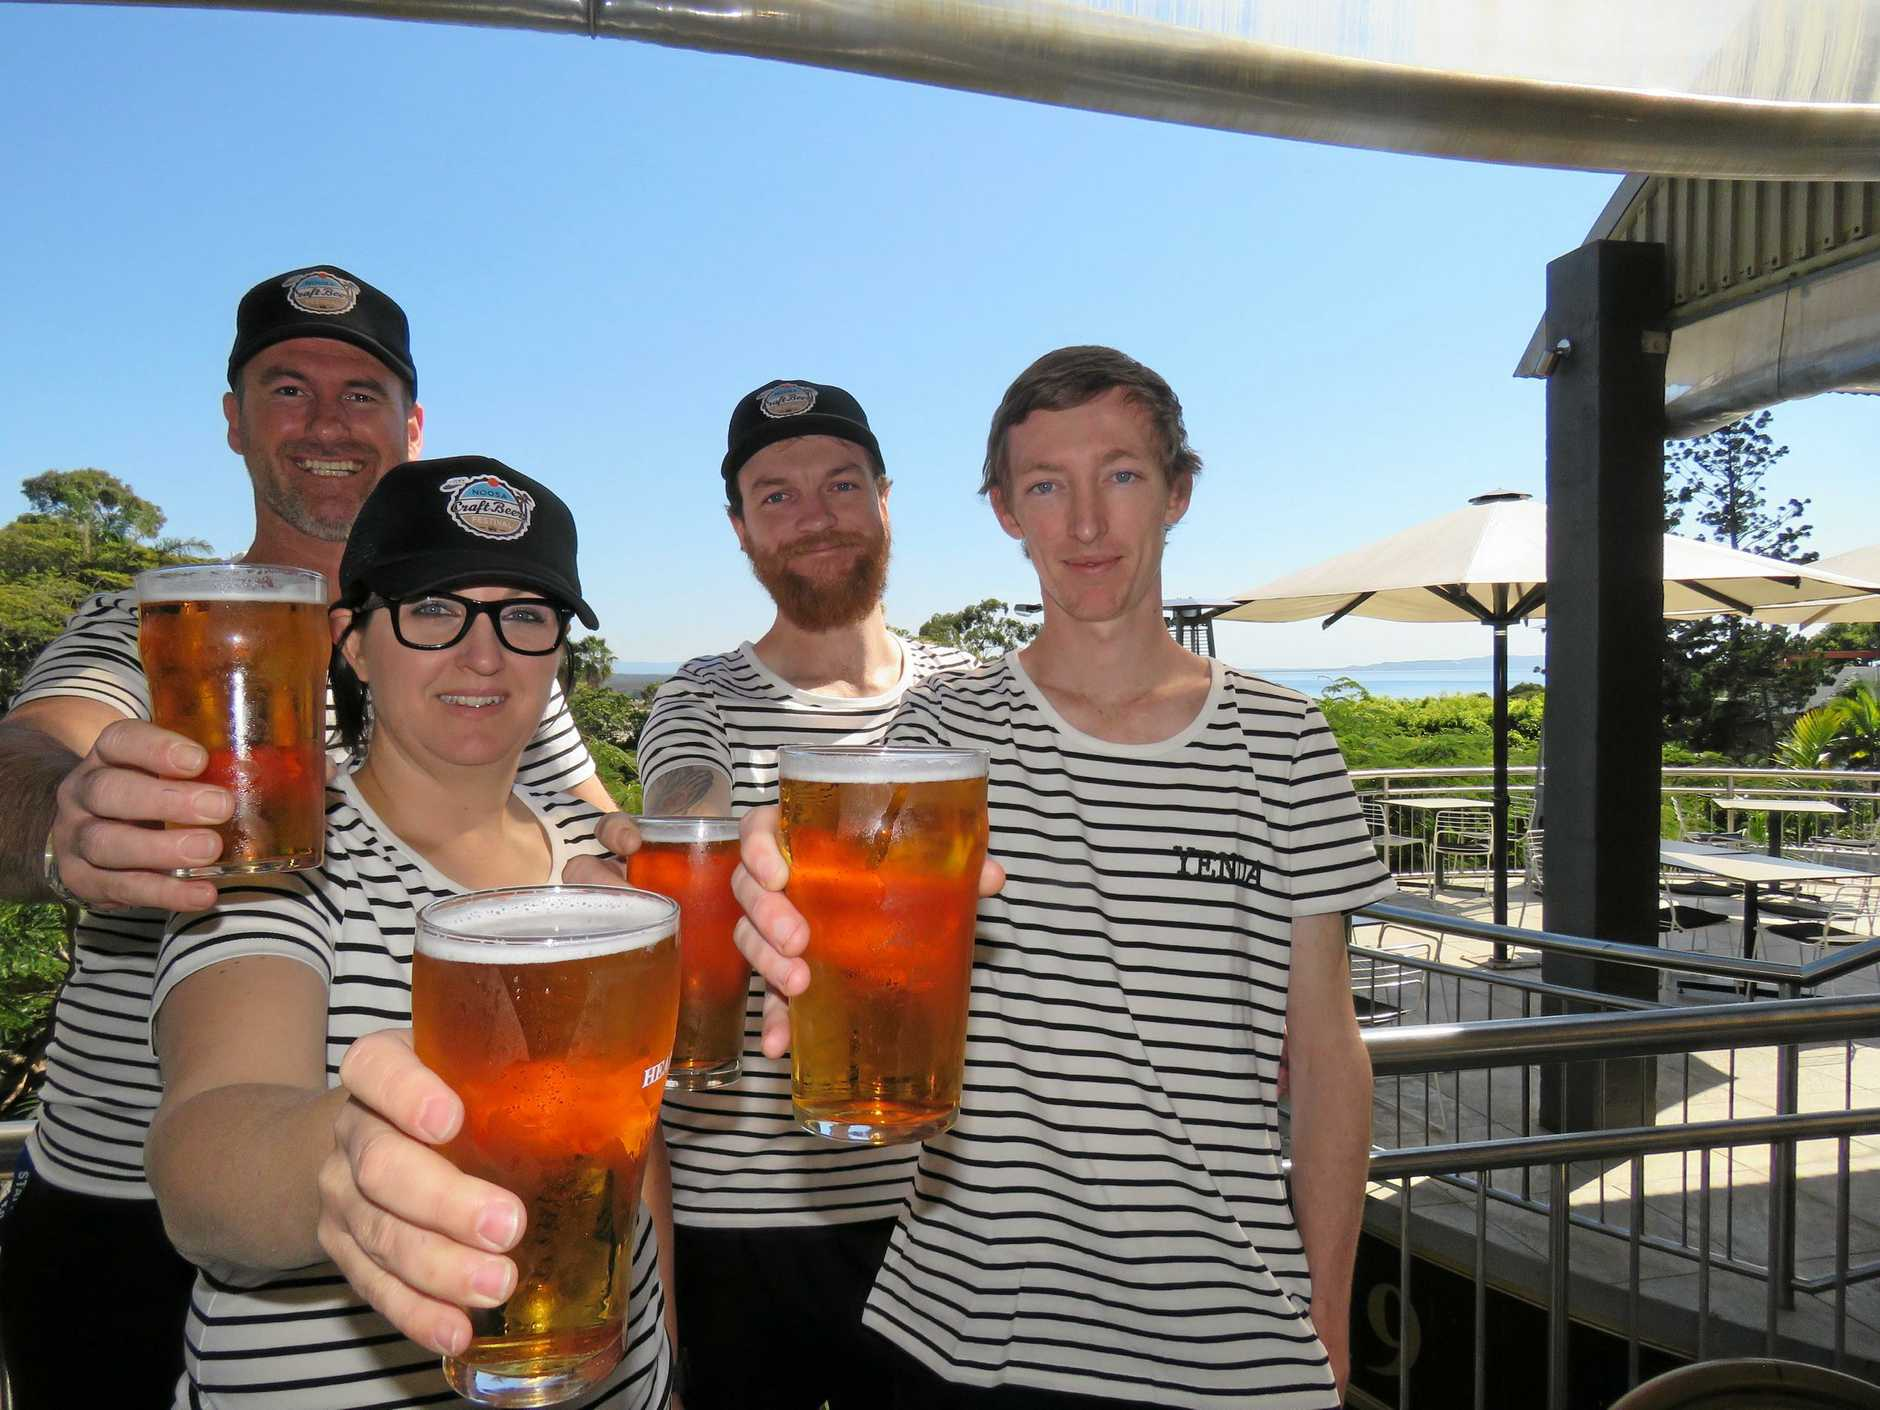 CHEERS: Noosa Reef Hotel staffers Allan, Stacey, Graham and Jake raise their glasses to the Noosa Craft Beer Fest.